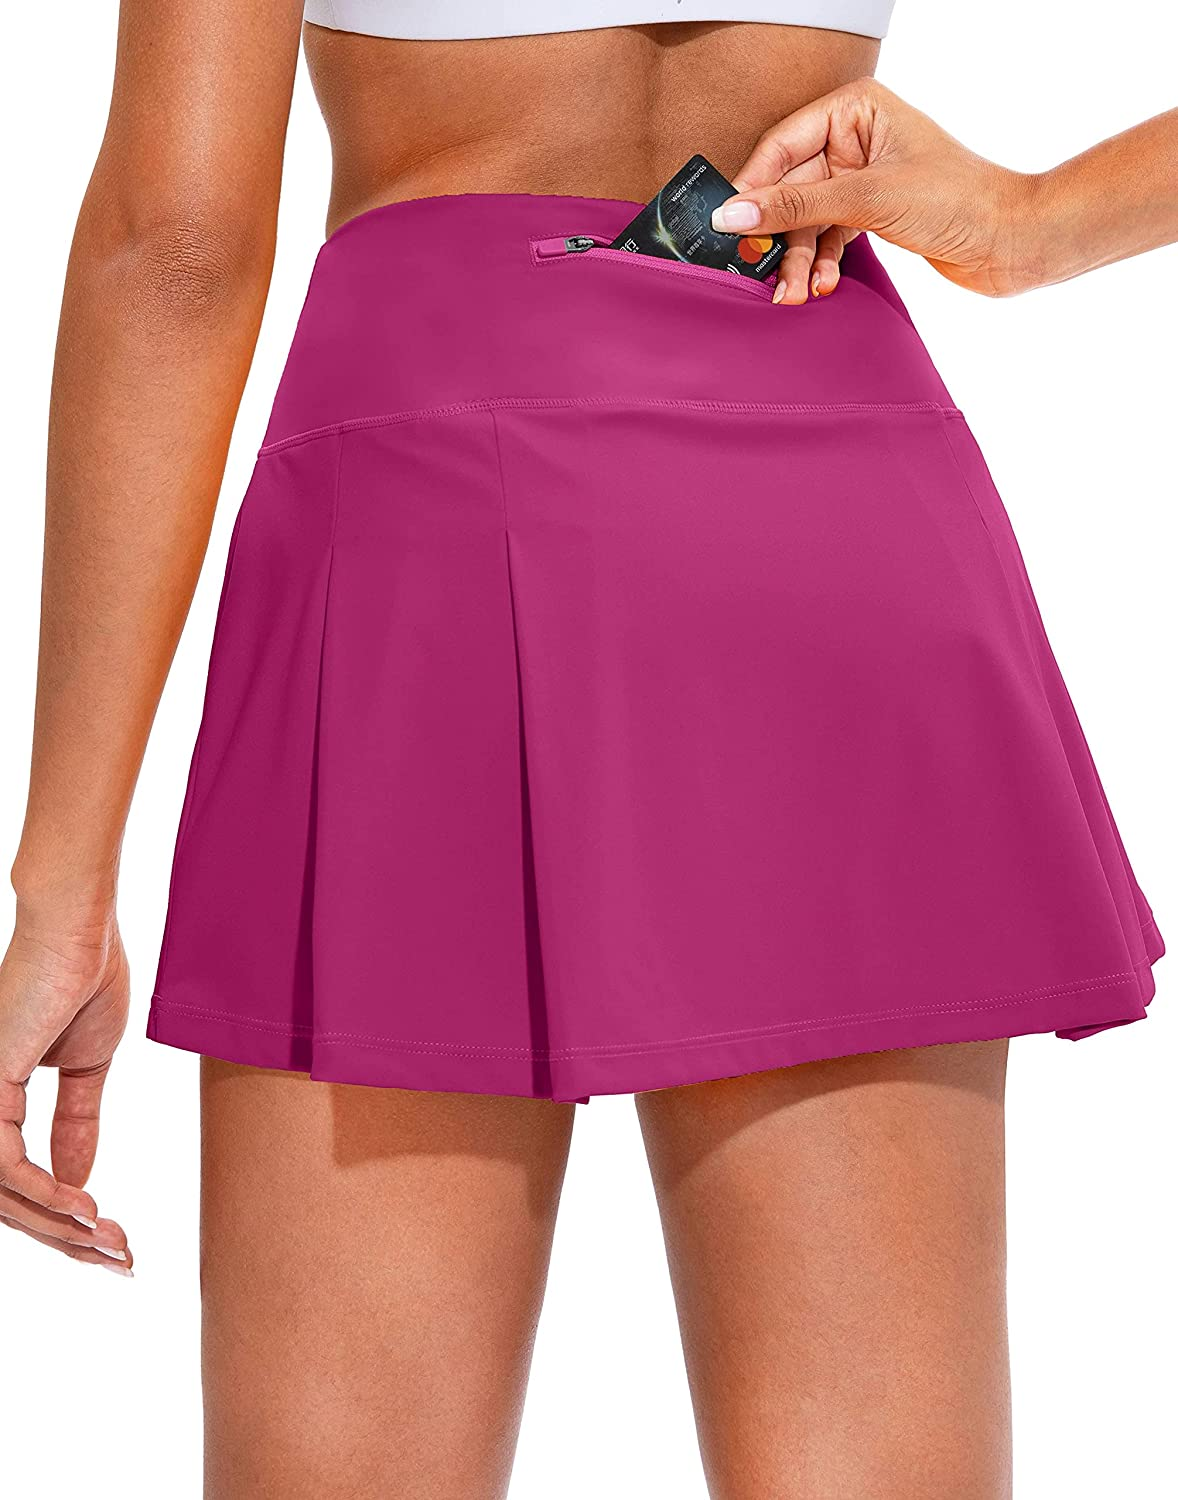 Soothfeel Pleated Tennis Skirt for Hi Pockets Ranking TOP19 Women Women's Choice with